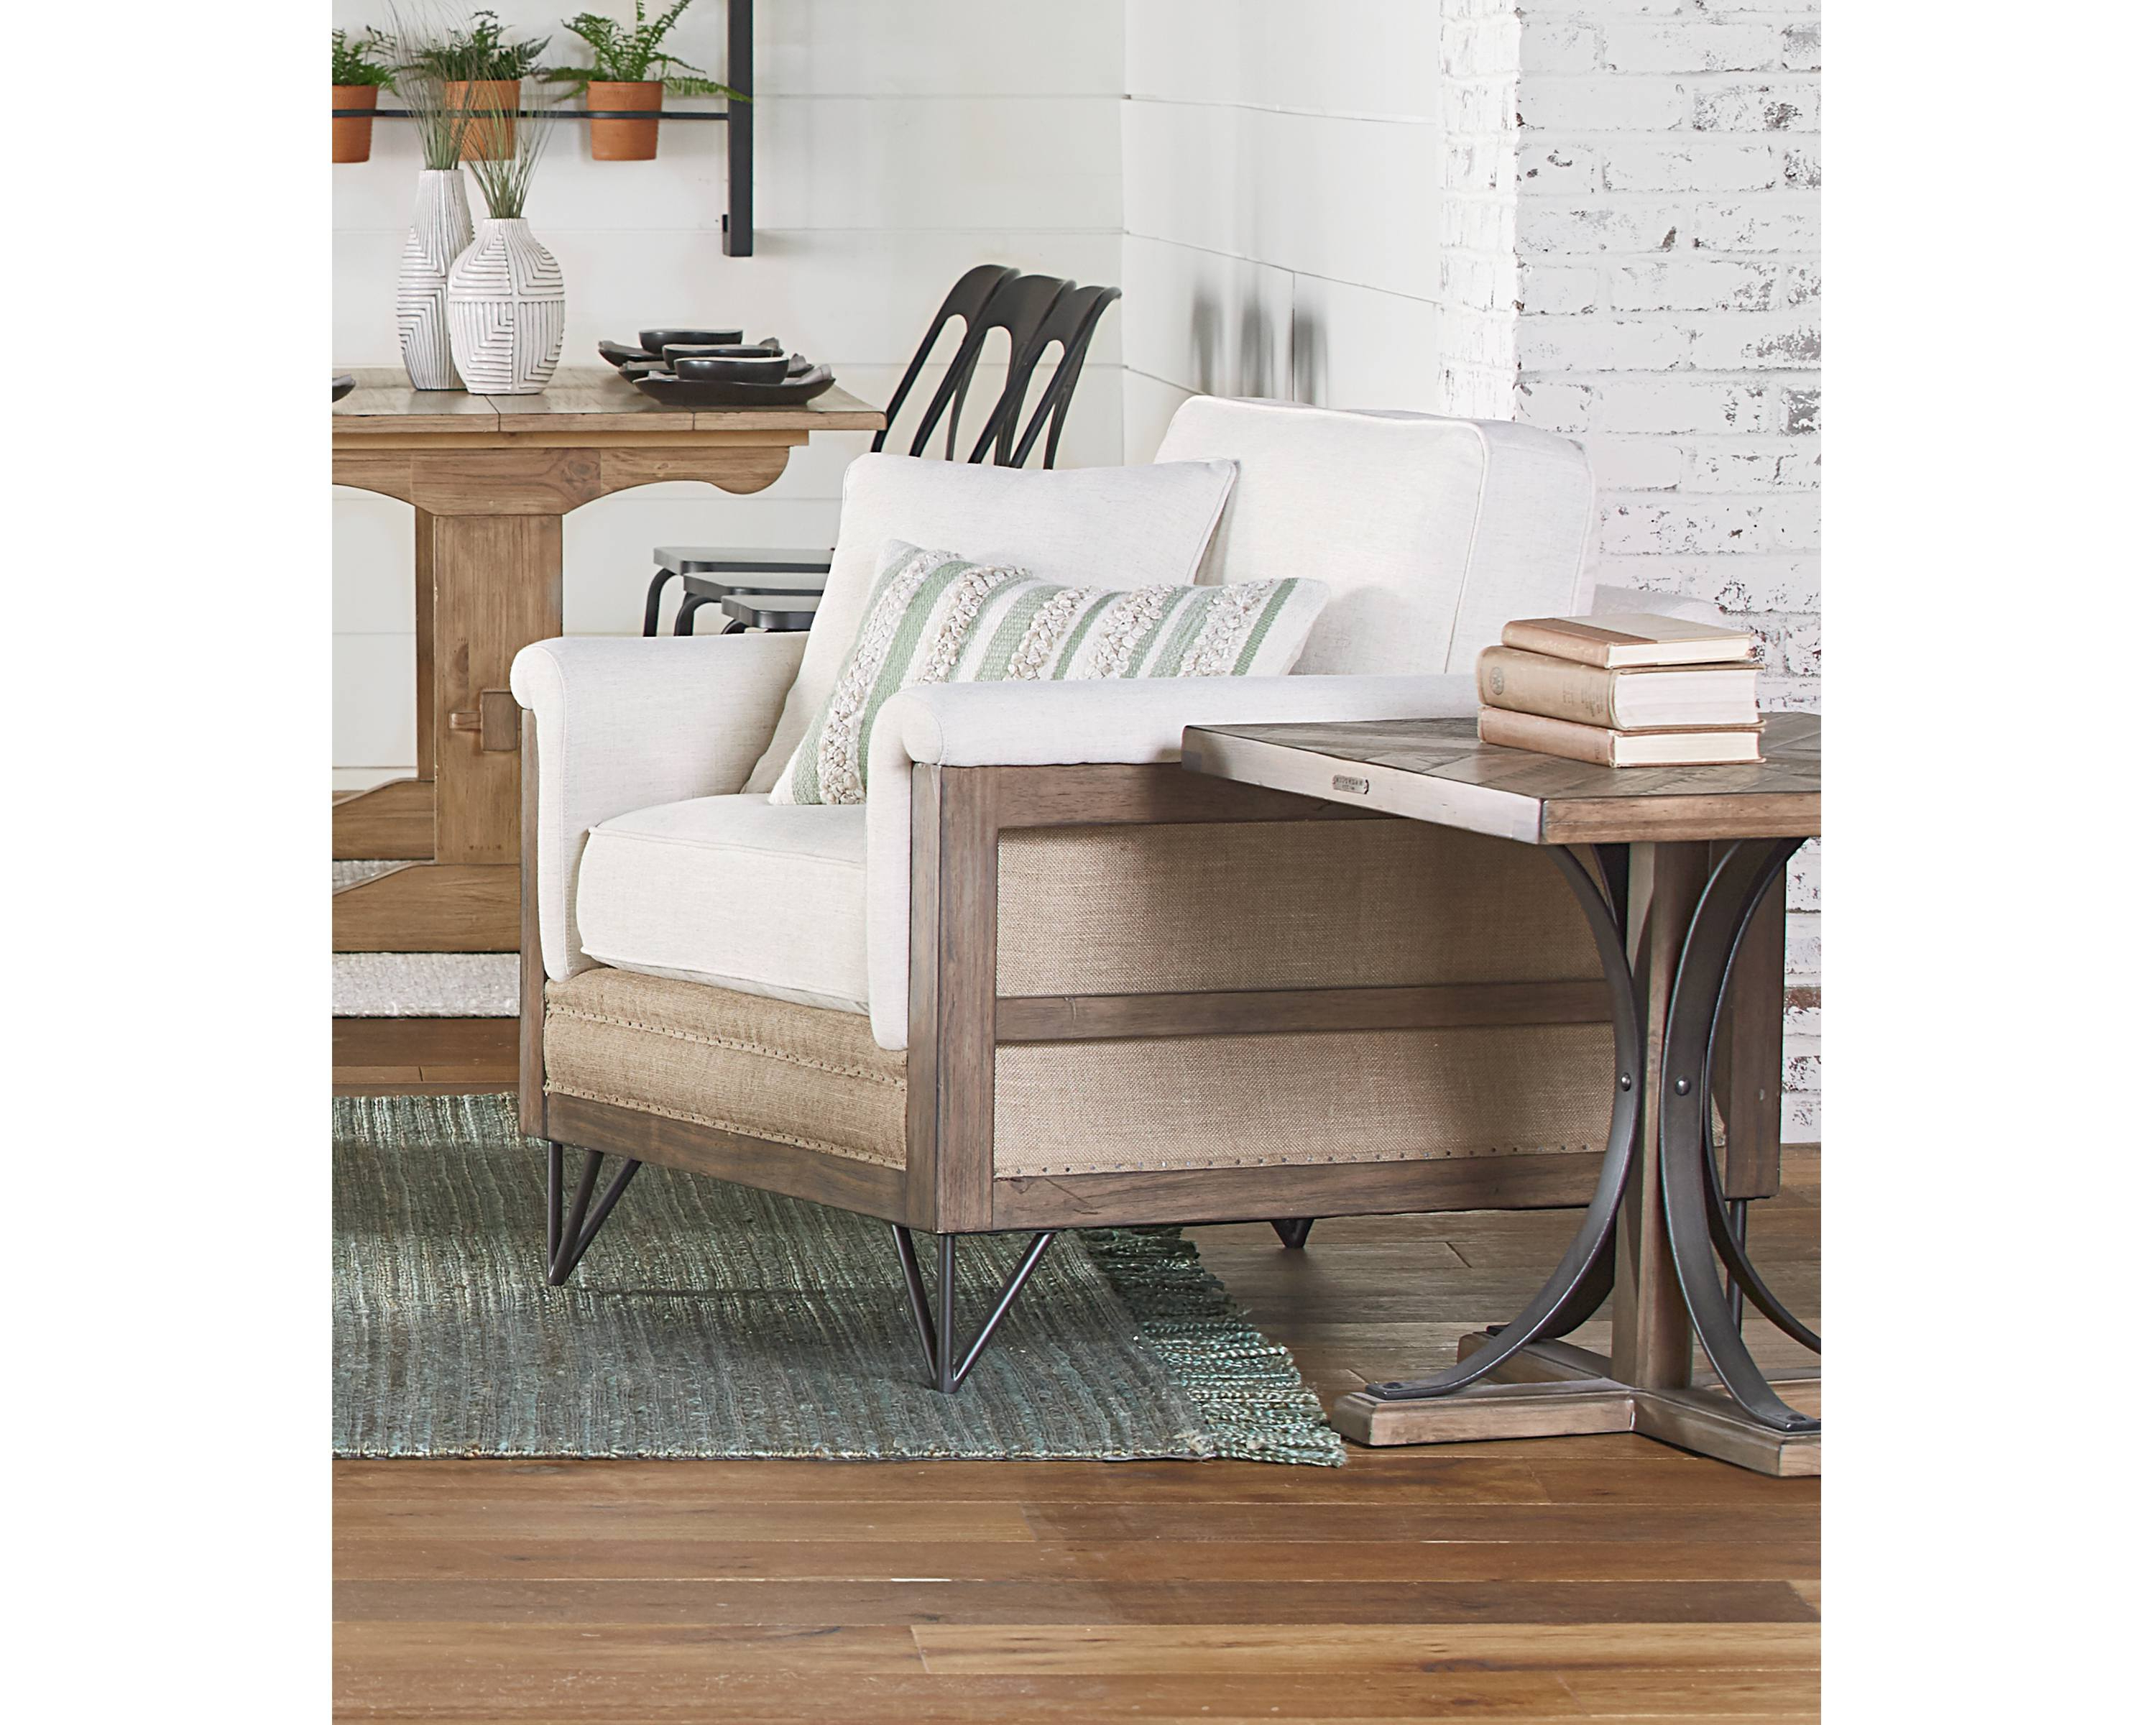 Fashionable Paradigm Chair – Magnolia Home For Magnolia Home Paradigm Sofa Chairs By Joanna Gaines (Gallery 9 of 20)